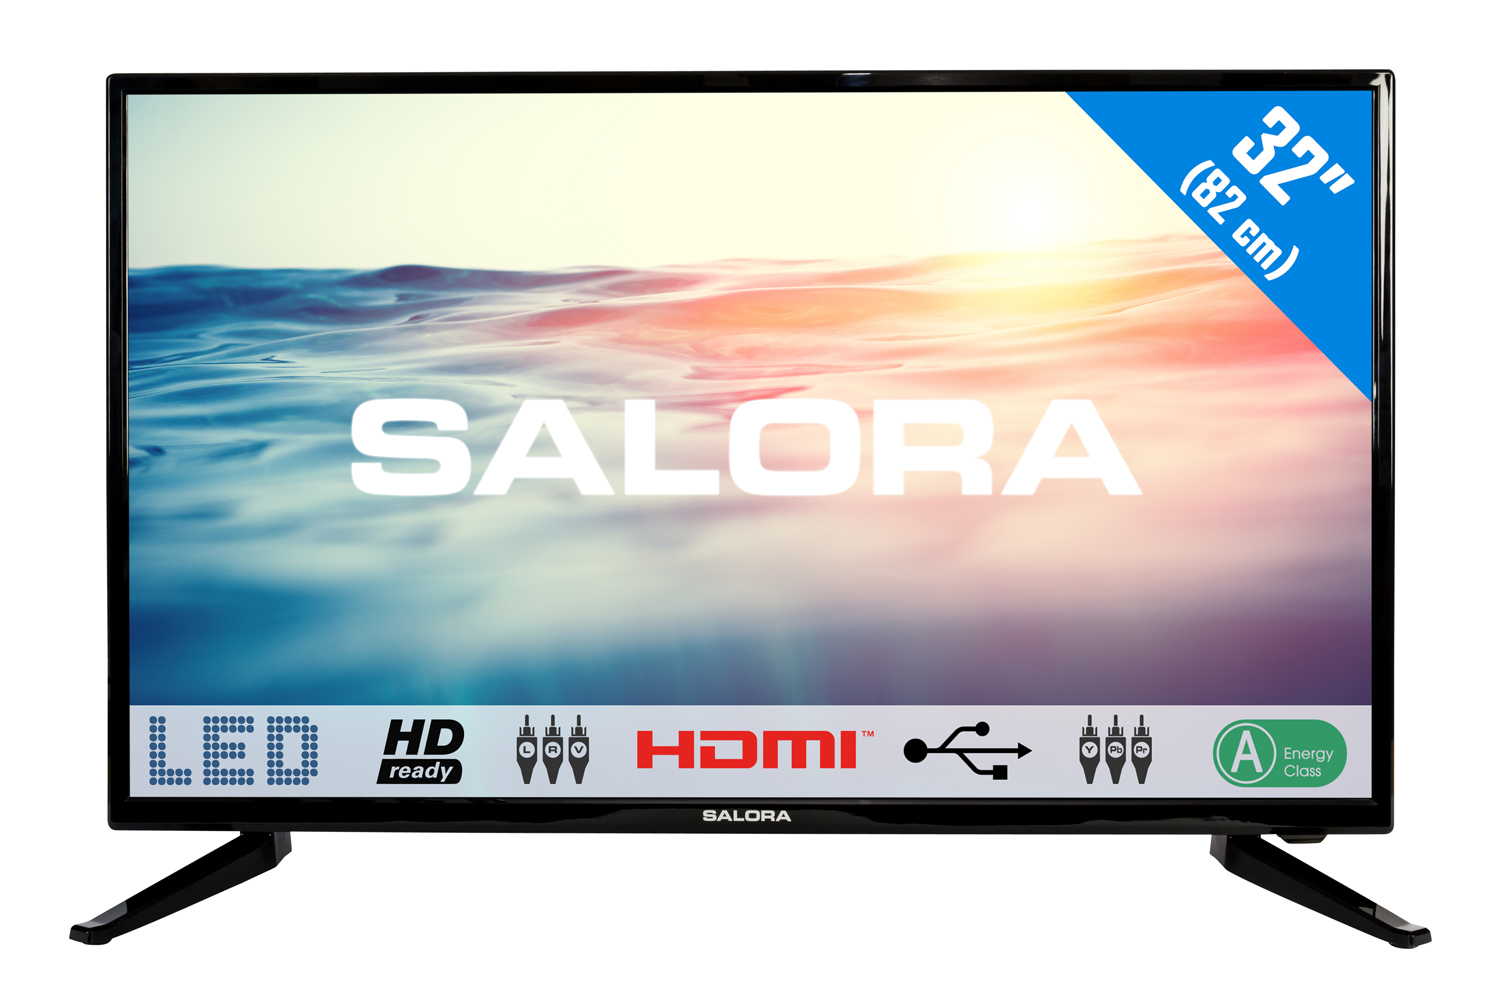 32LED1600, 32''/81,28cm LED TV, hd ready 2usb-mediaplayer 2HDMI scart analog tuner a